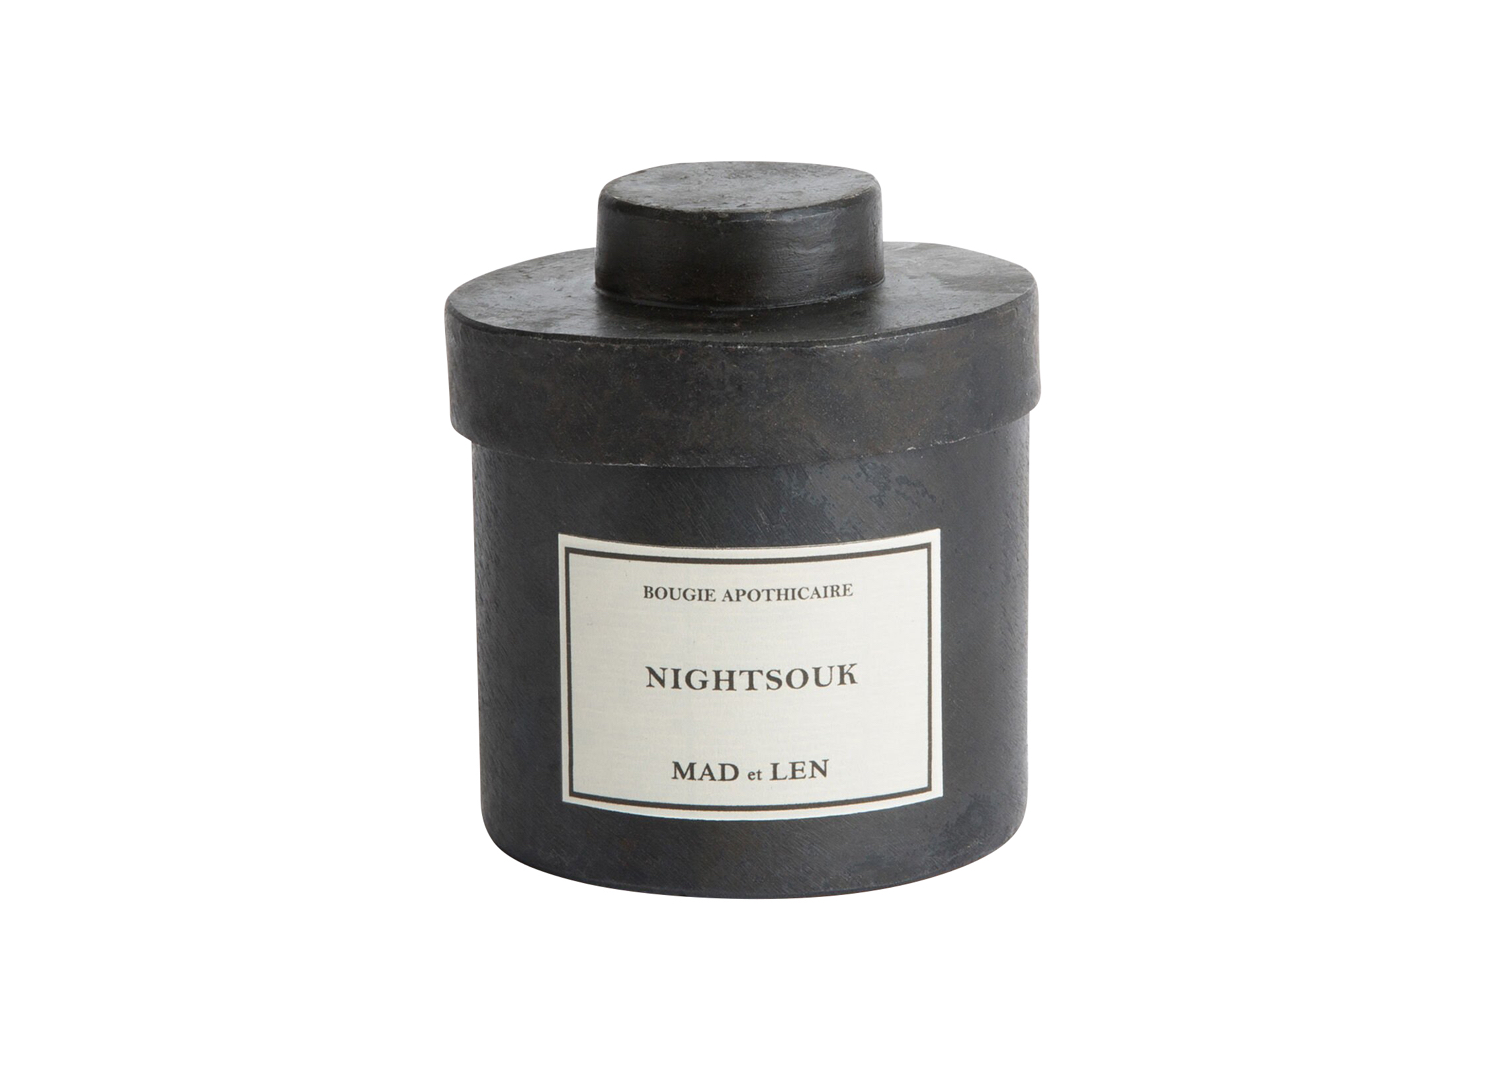 est living mad et len nightsouk candle 01